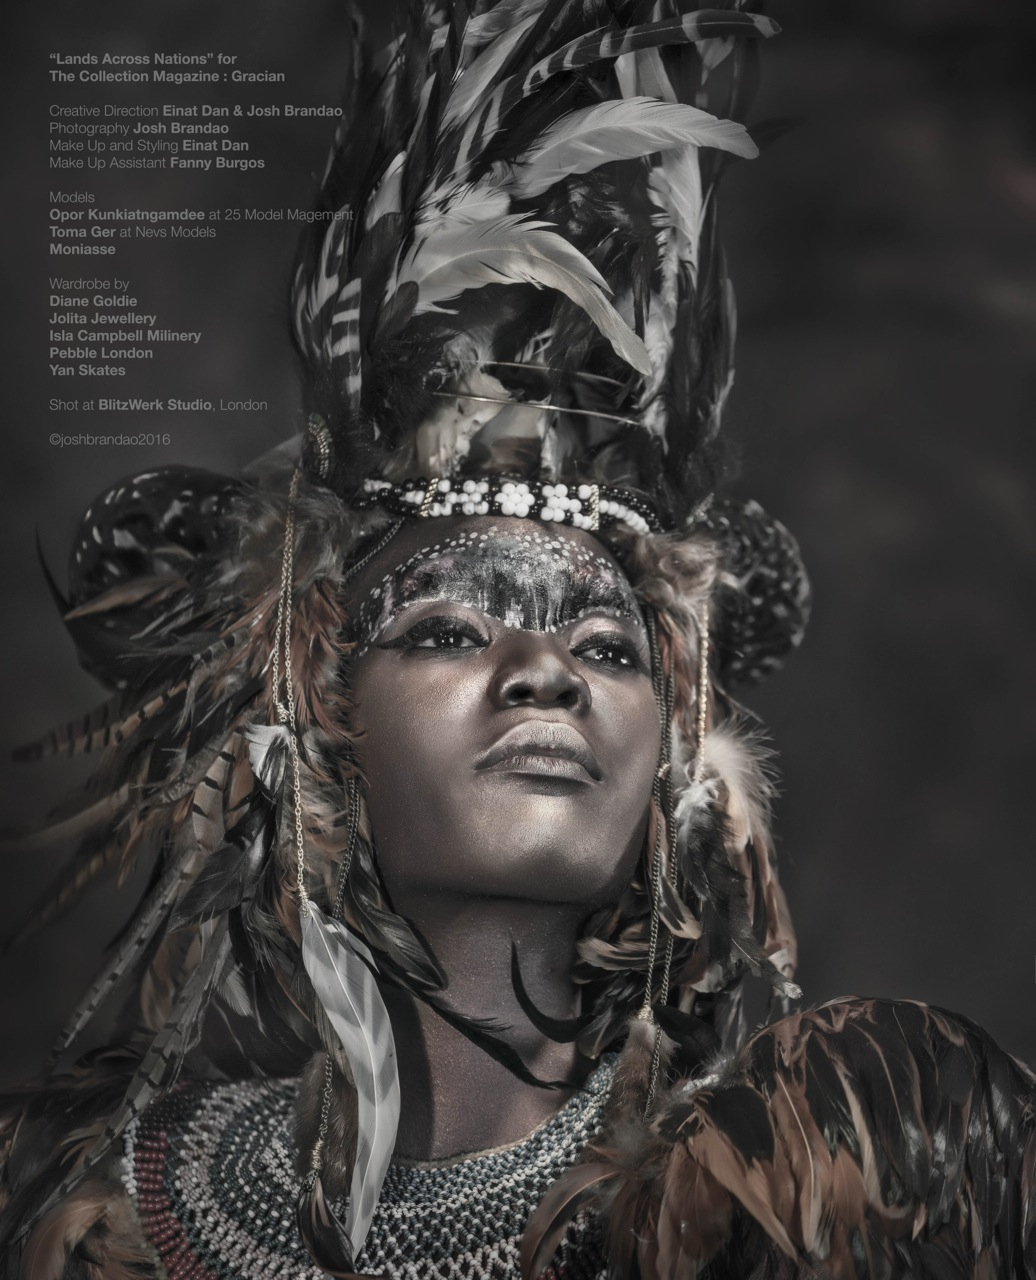 Gracian Magazine - Lands Across Nations - Diane Goldie Einat Dan Isla Campbell Millinery Josh Brandao Moniasse Pebble London Jolita Jewellery